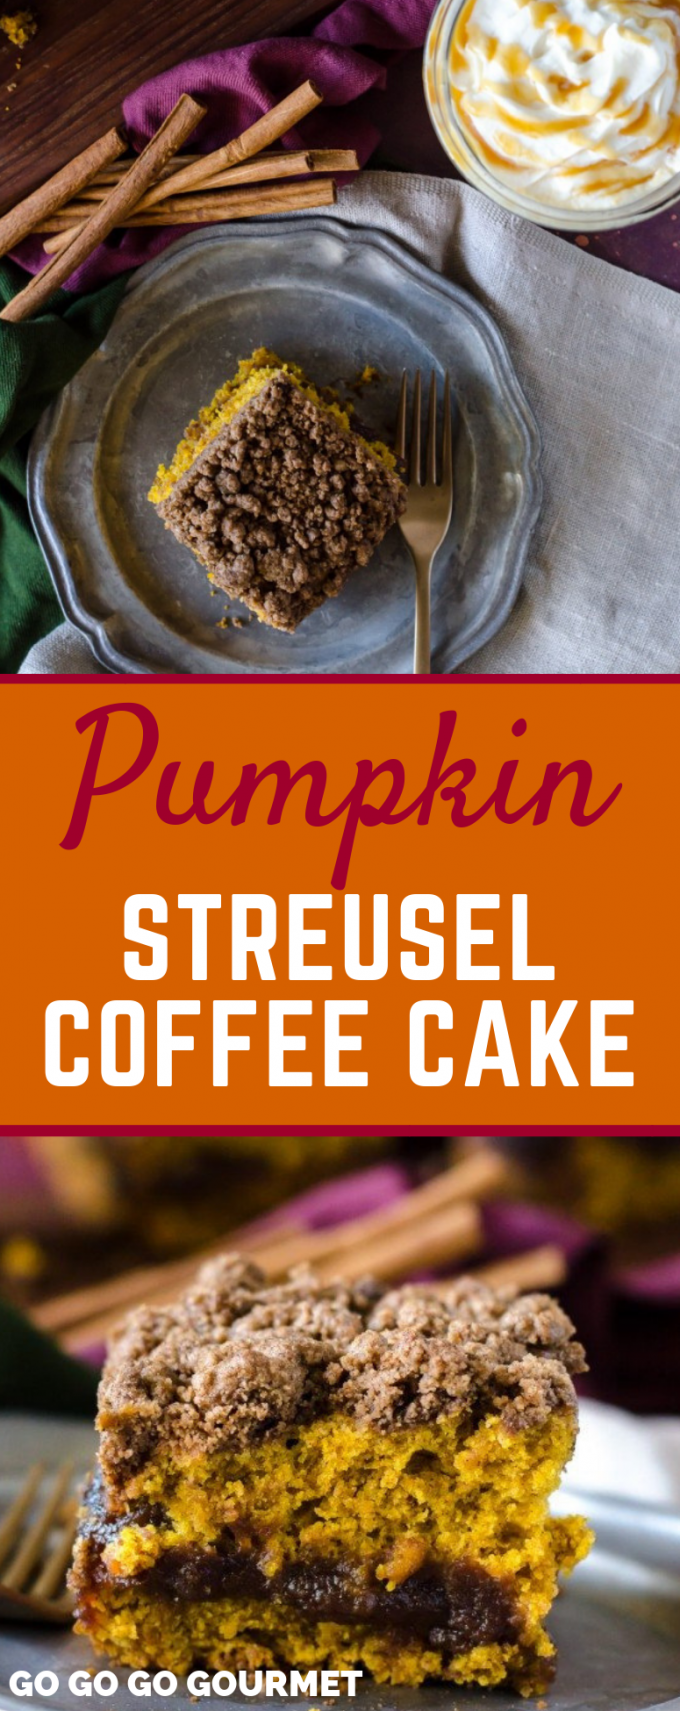 This Pumpkin Coffee Cake is one of the best fall recipes! Chock full of cinnamon with an apple butter filling, it is so moist and delicious. Topped with streusel that's super easy to make, you can't go wrong! #pumpkinstreuselcoffeecake #easyfalldesserts #pumpkinrecipes #gogogogourmet